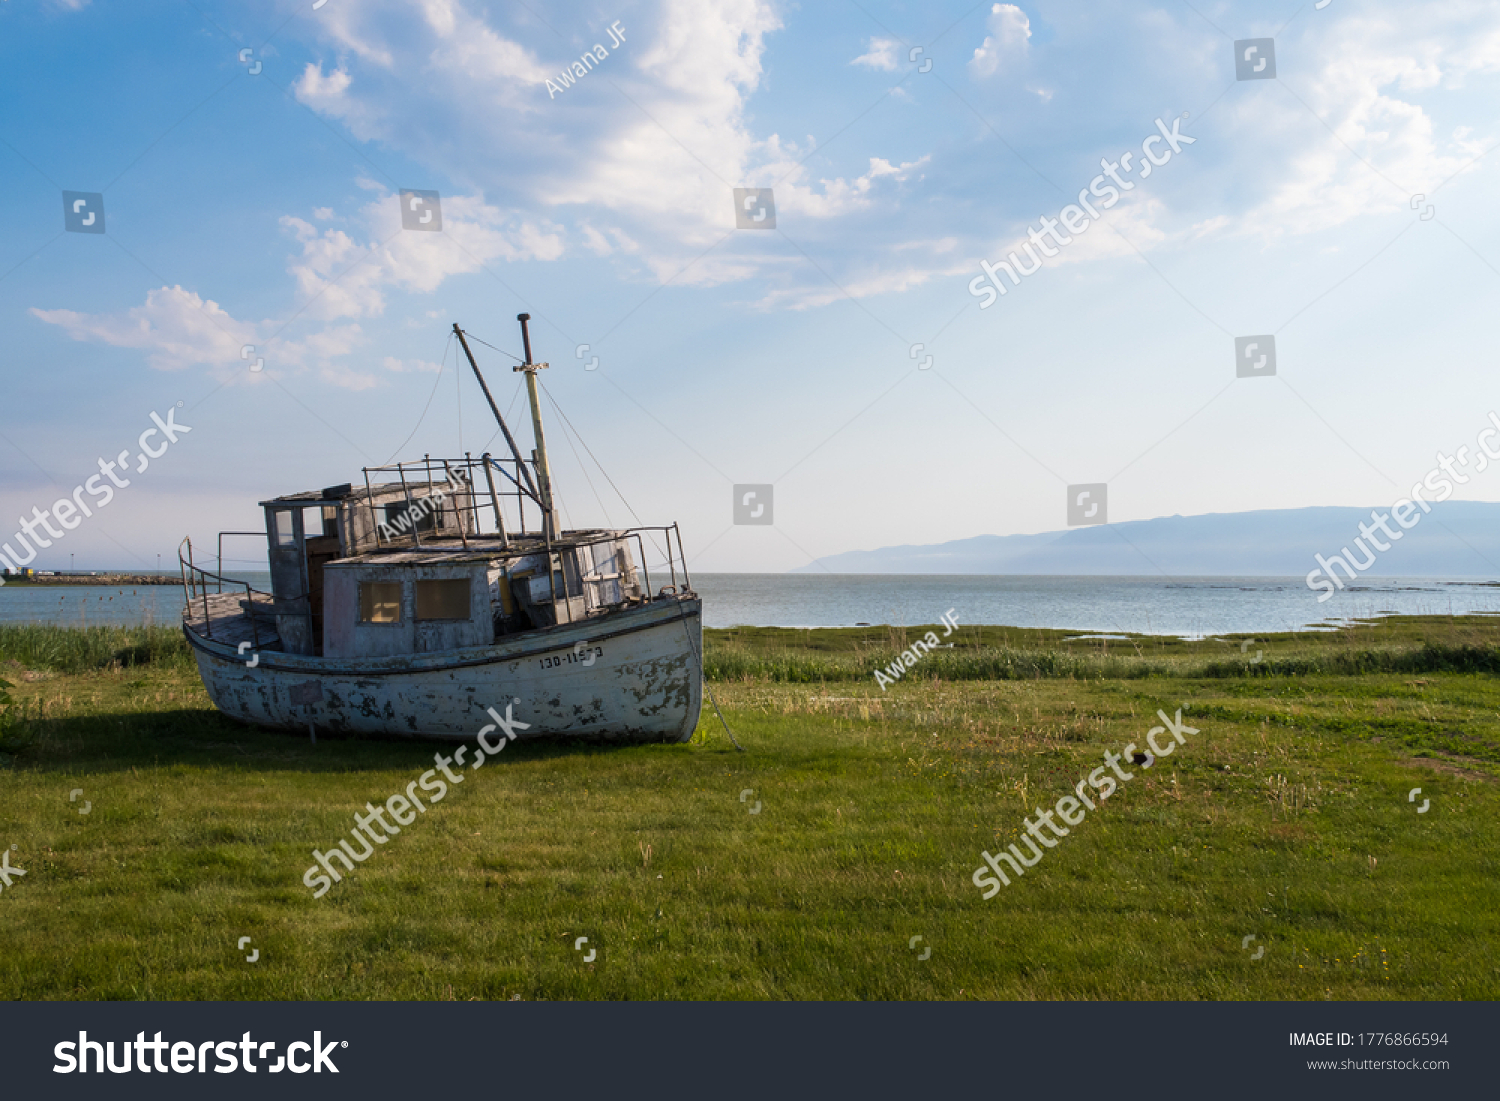 stock-photo-view-of-a-shipwrecked-fishin